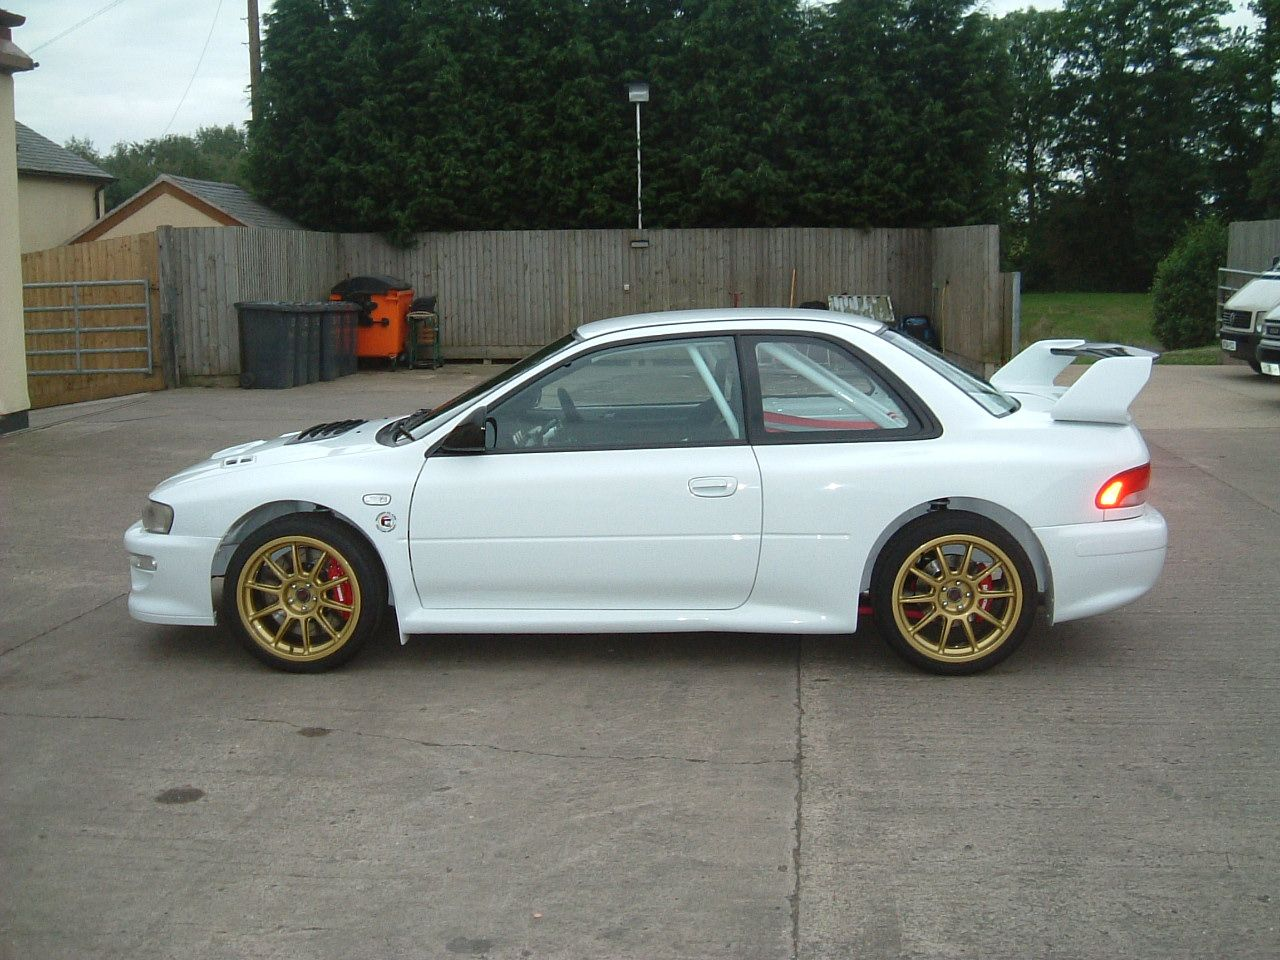 Subaru 22b Impreza Wrx Sti And This One Is Over 800hp! I Want One